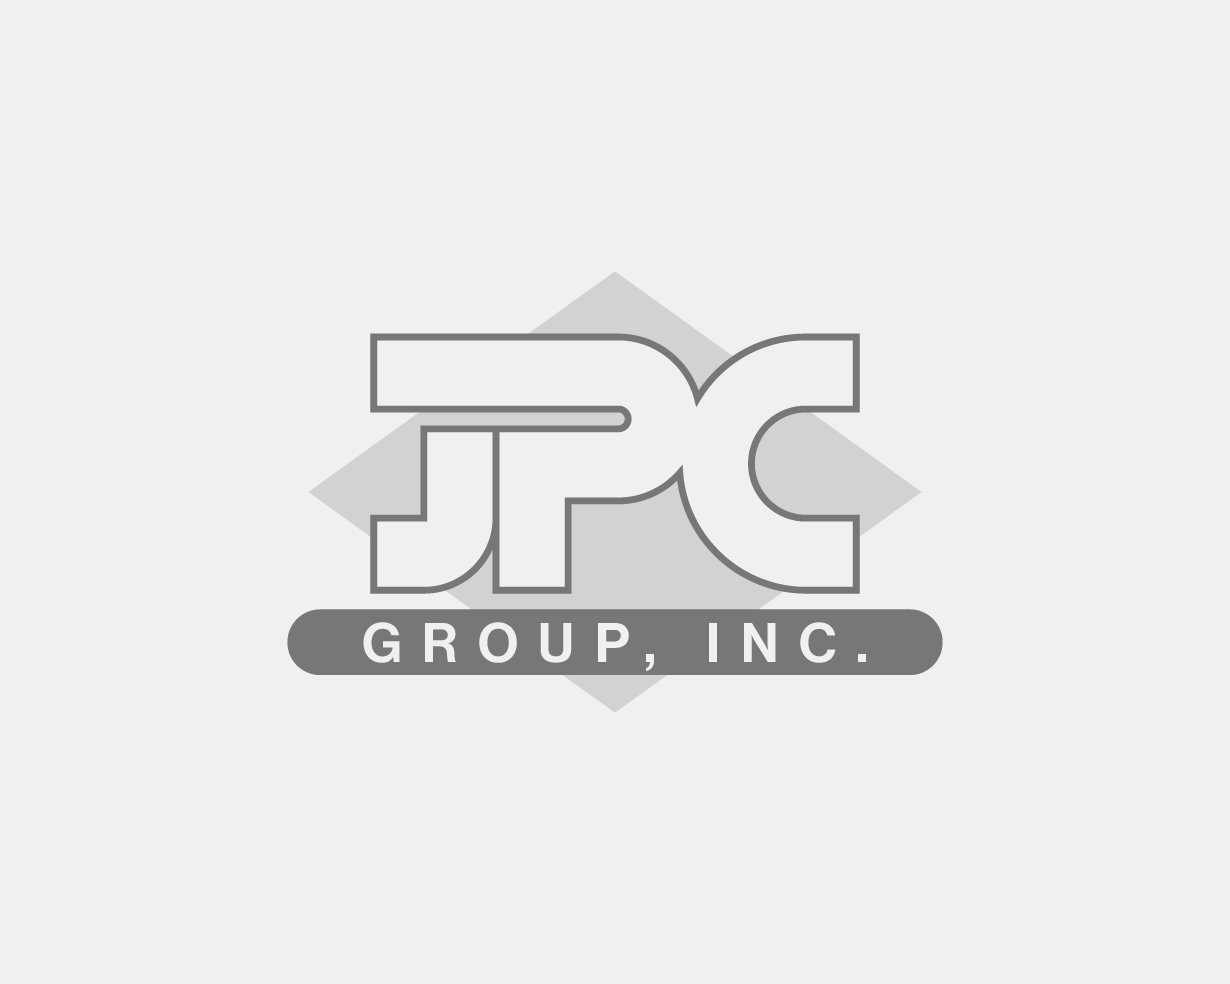 Breen_Electrical_Clients_JPC_Group